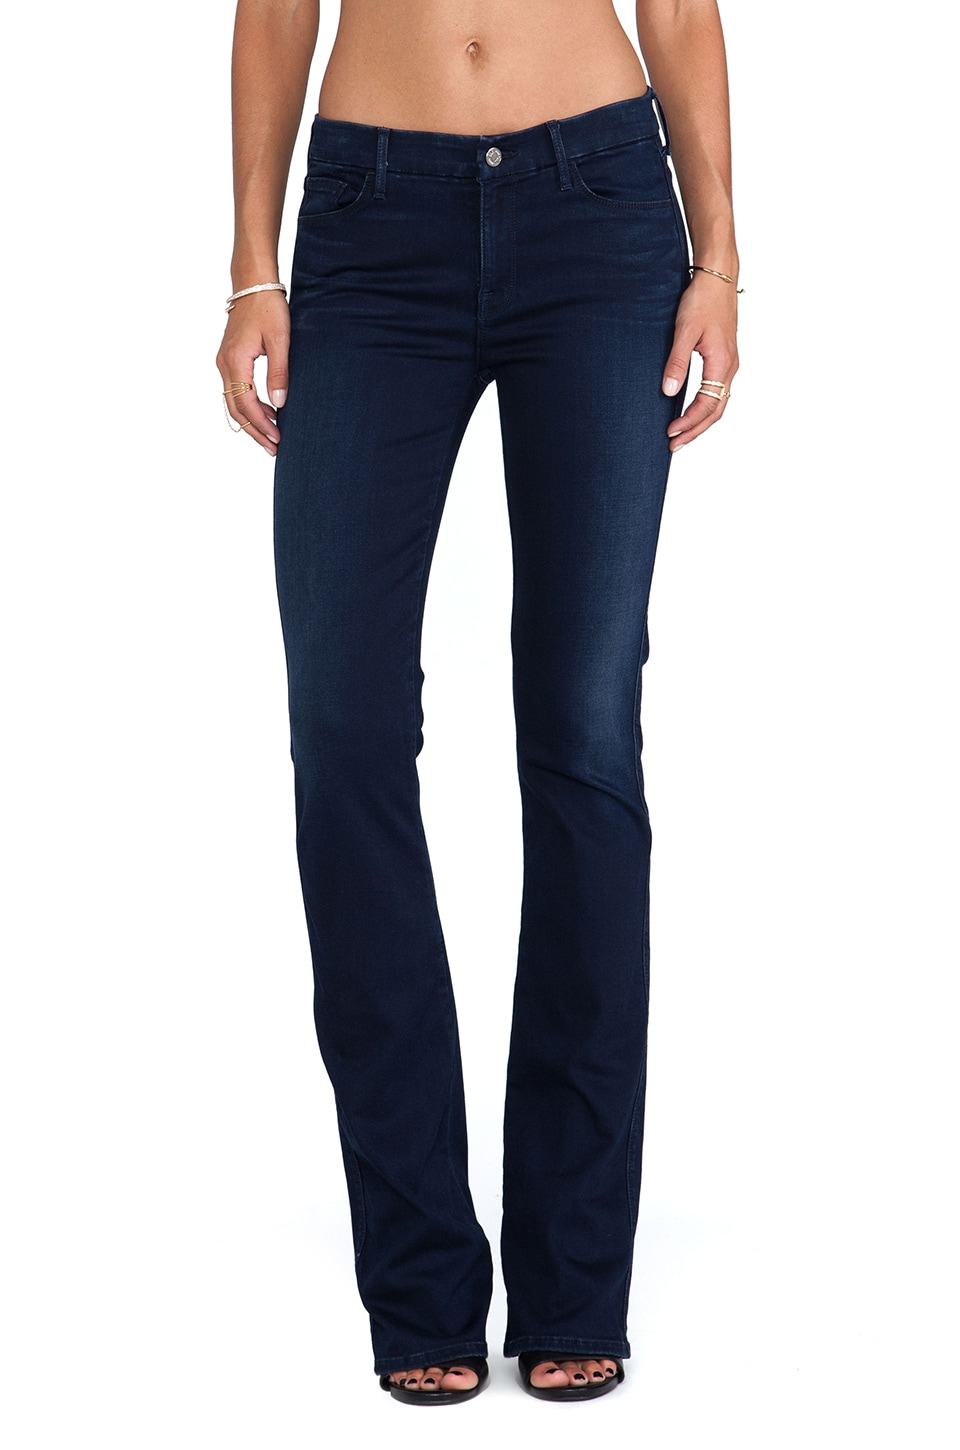 7 For All Mankind The Skinny Bootcut with Contour in Slim Illusion Luxe Rich Blue